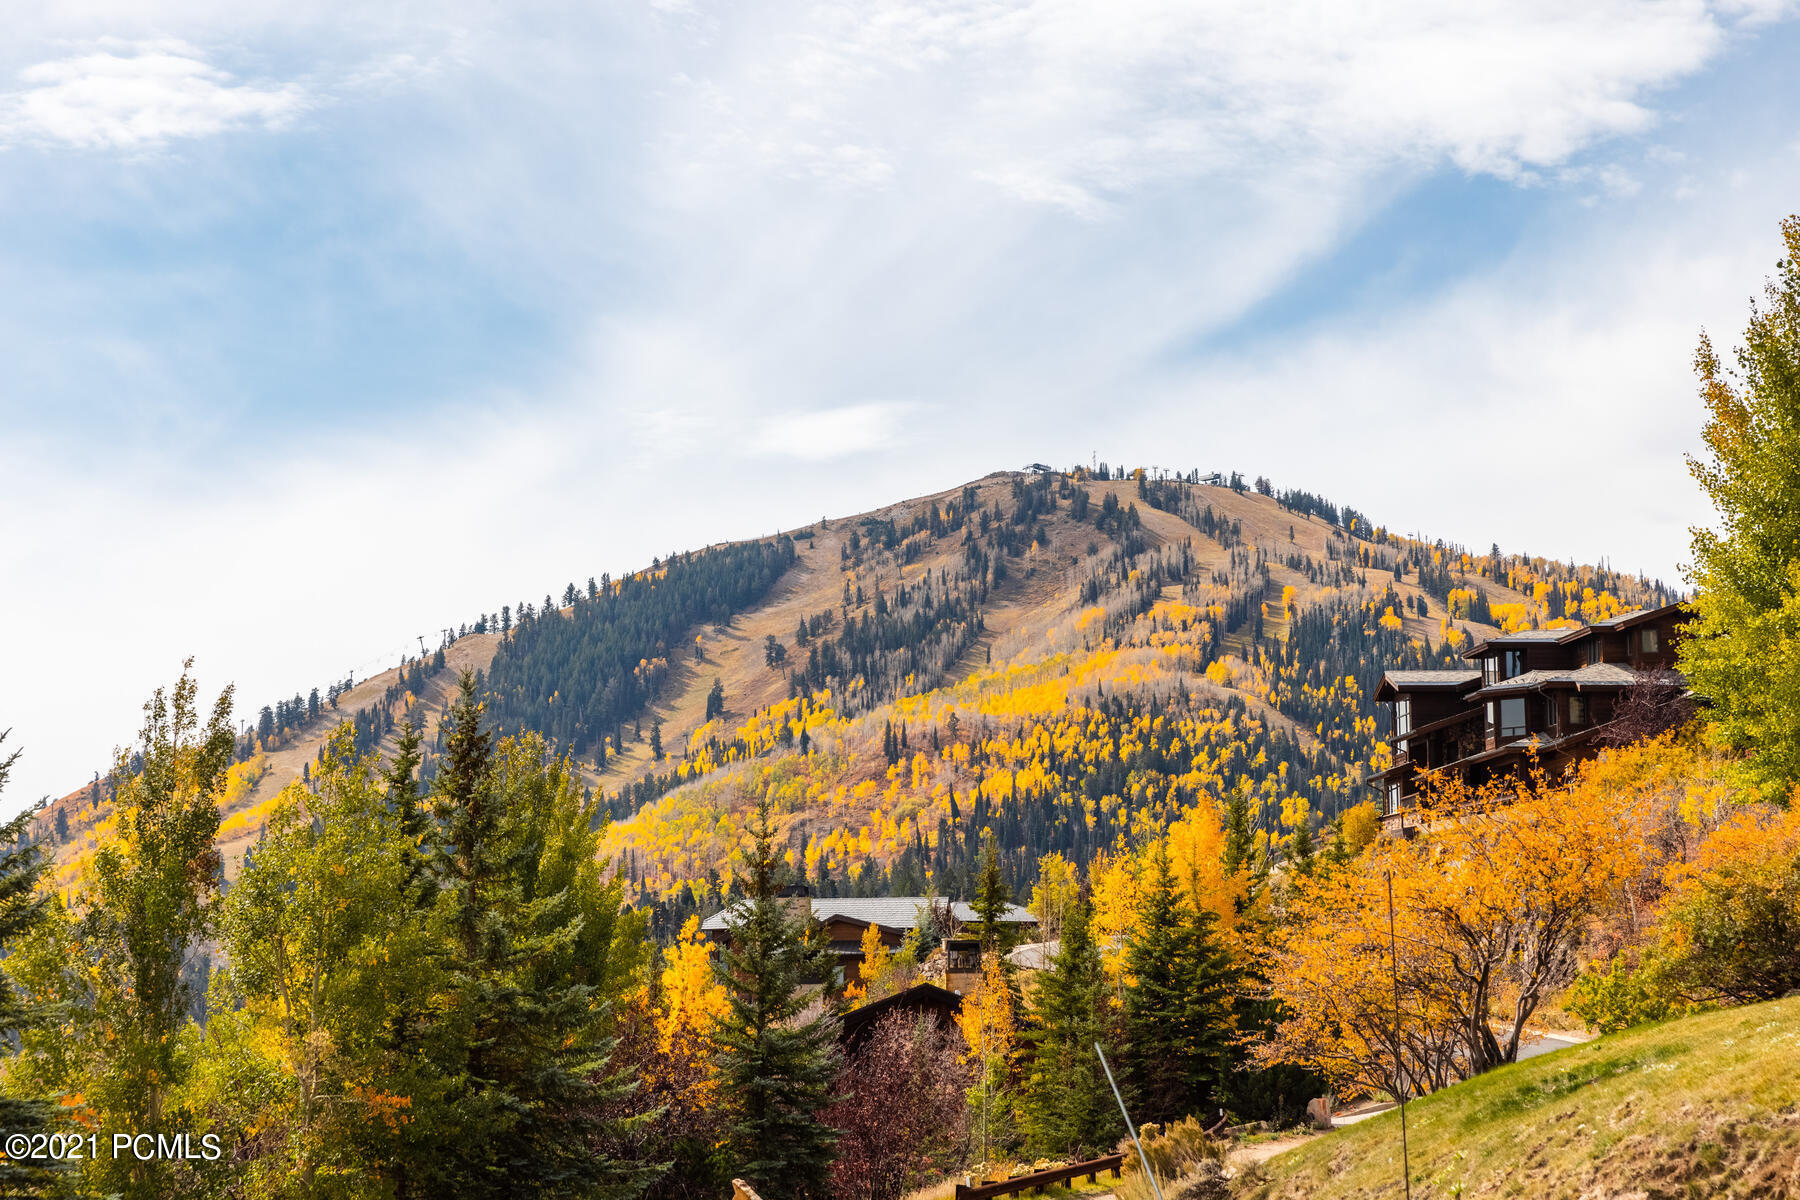 Situated in the private gated community of Deer Crest, this .87 acre homesite offers unobstructed views over the Jordanelle Reservoir, the Uinta Mountains, Heber Valley to Bald Mountain with direct ski-in ski-out access on the private Crest Ridge trail. Truly one of the best lots in Park City!